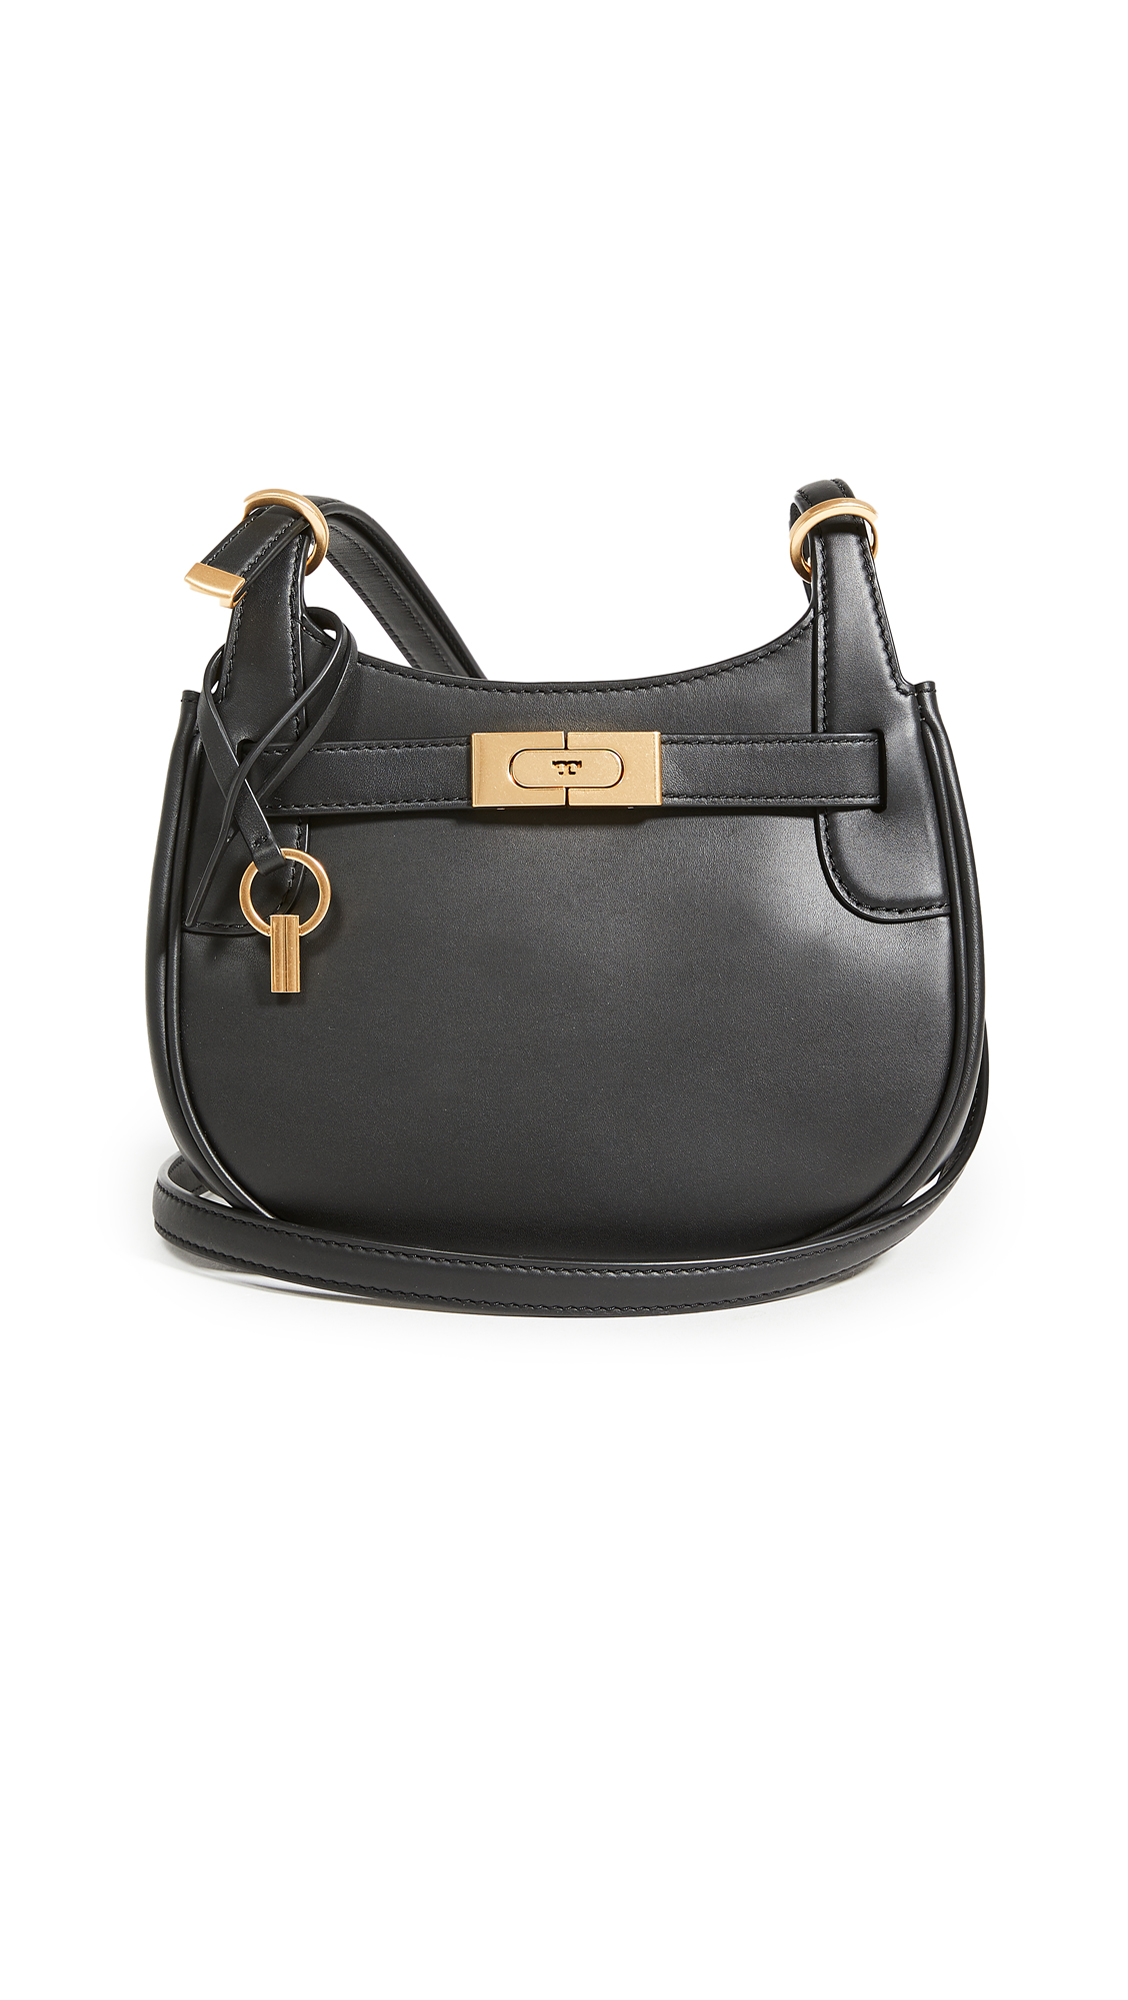 Tory Burch Lee Radziwill Small Saddlebag